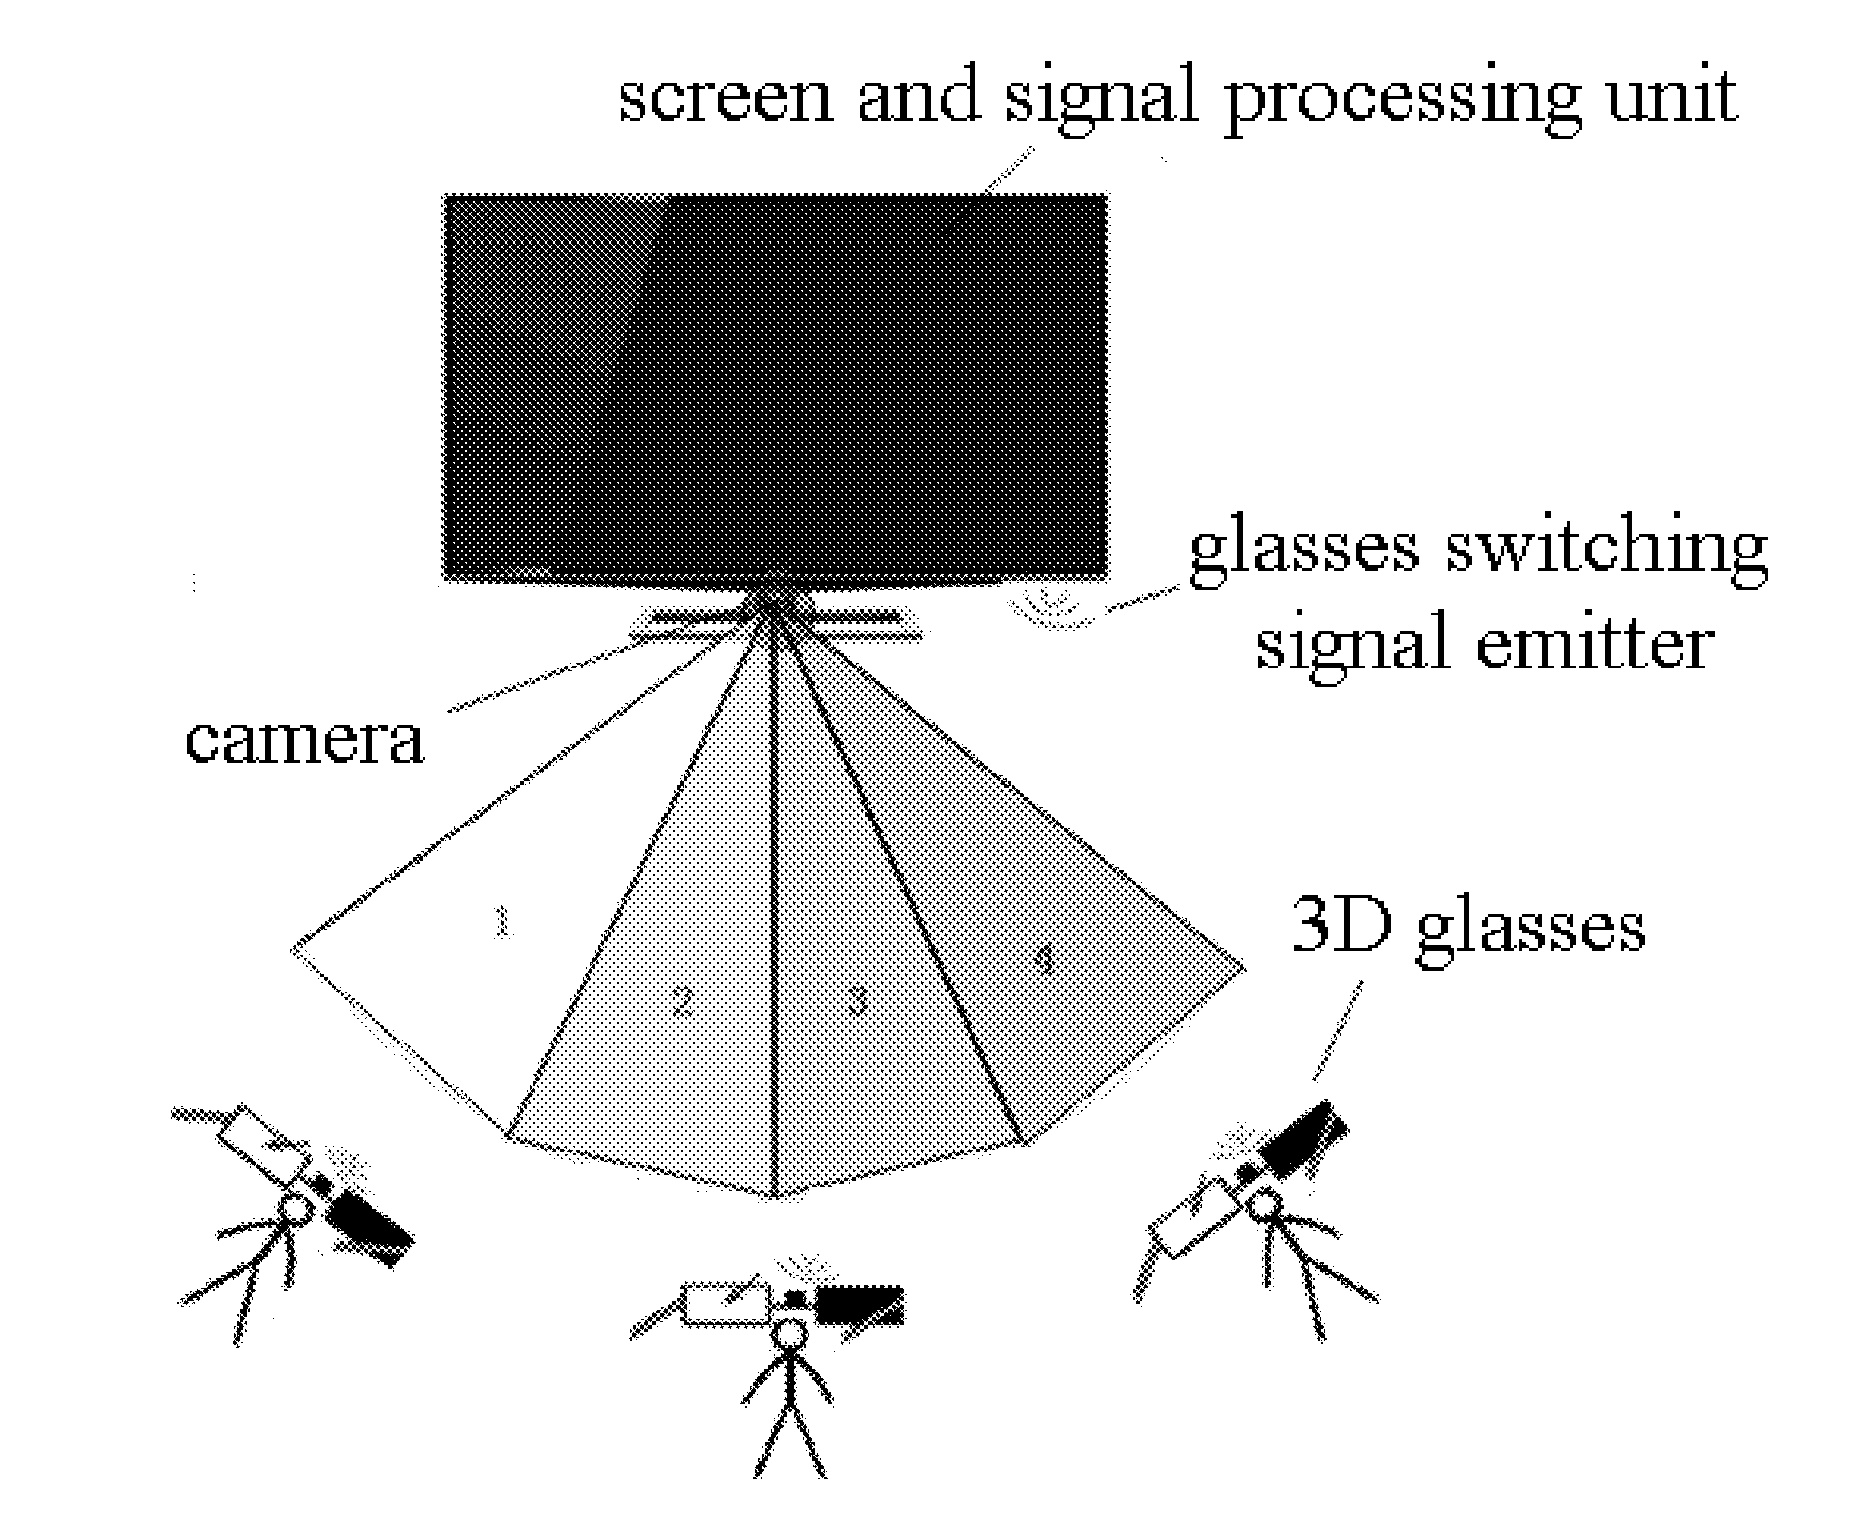 CPC Definition - H04N PICTORIAL COMMUNICATION, e g  TELEVISION